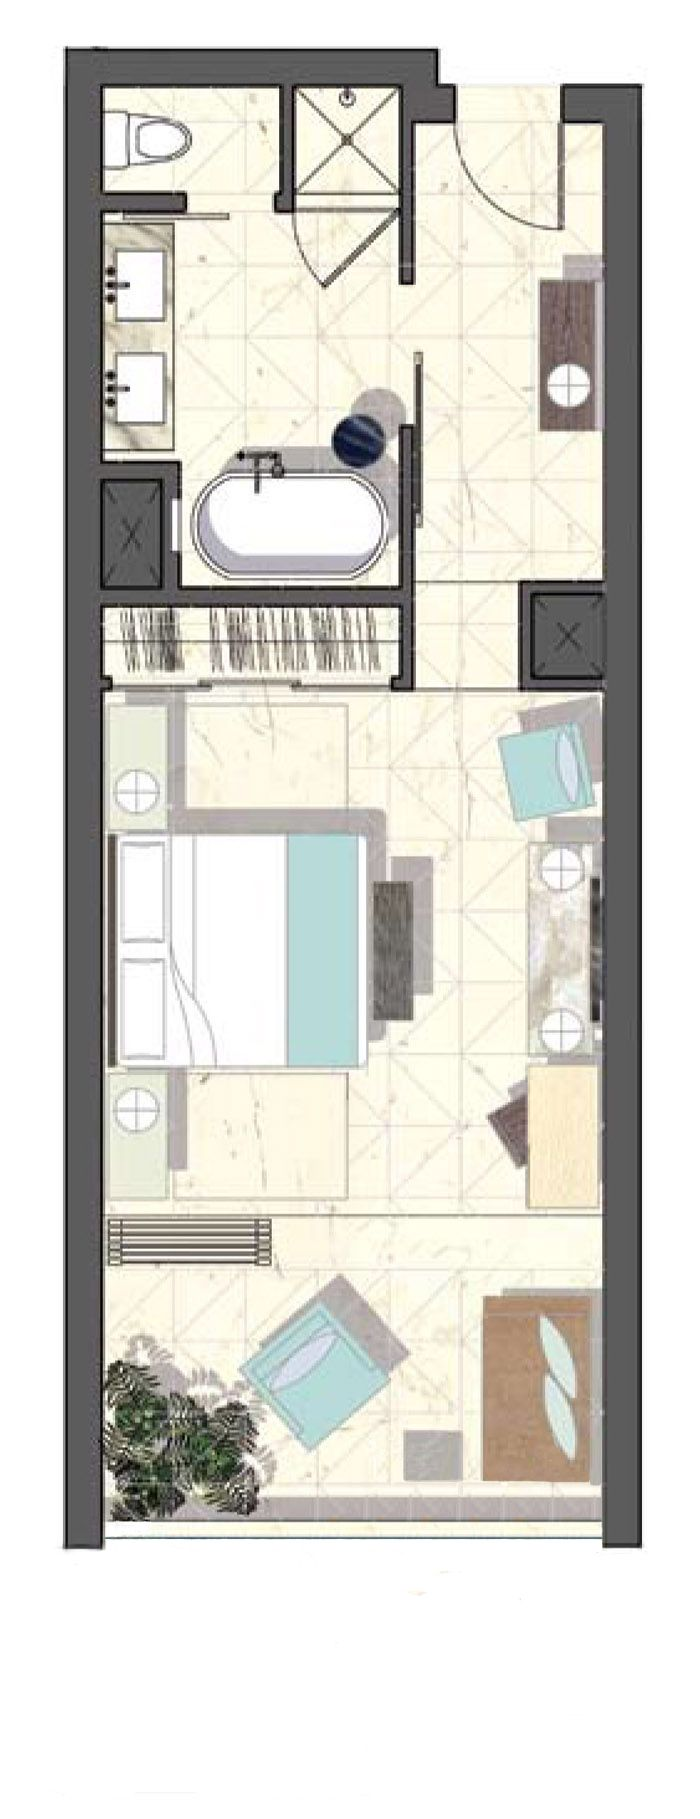 Viceroy Hotel Layout Good Design For A Room With A Balcony